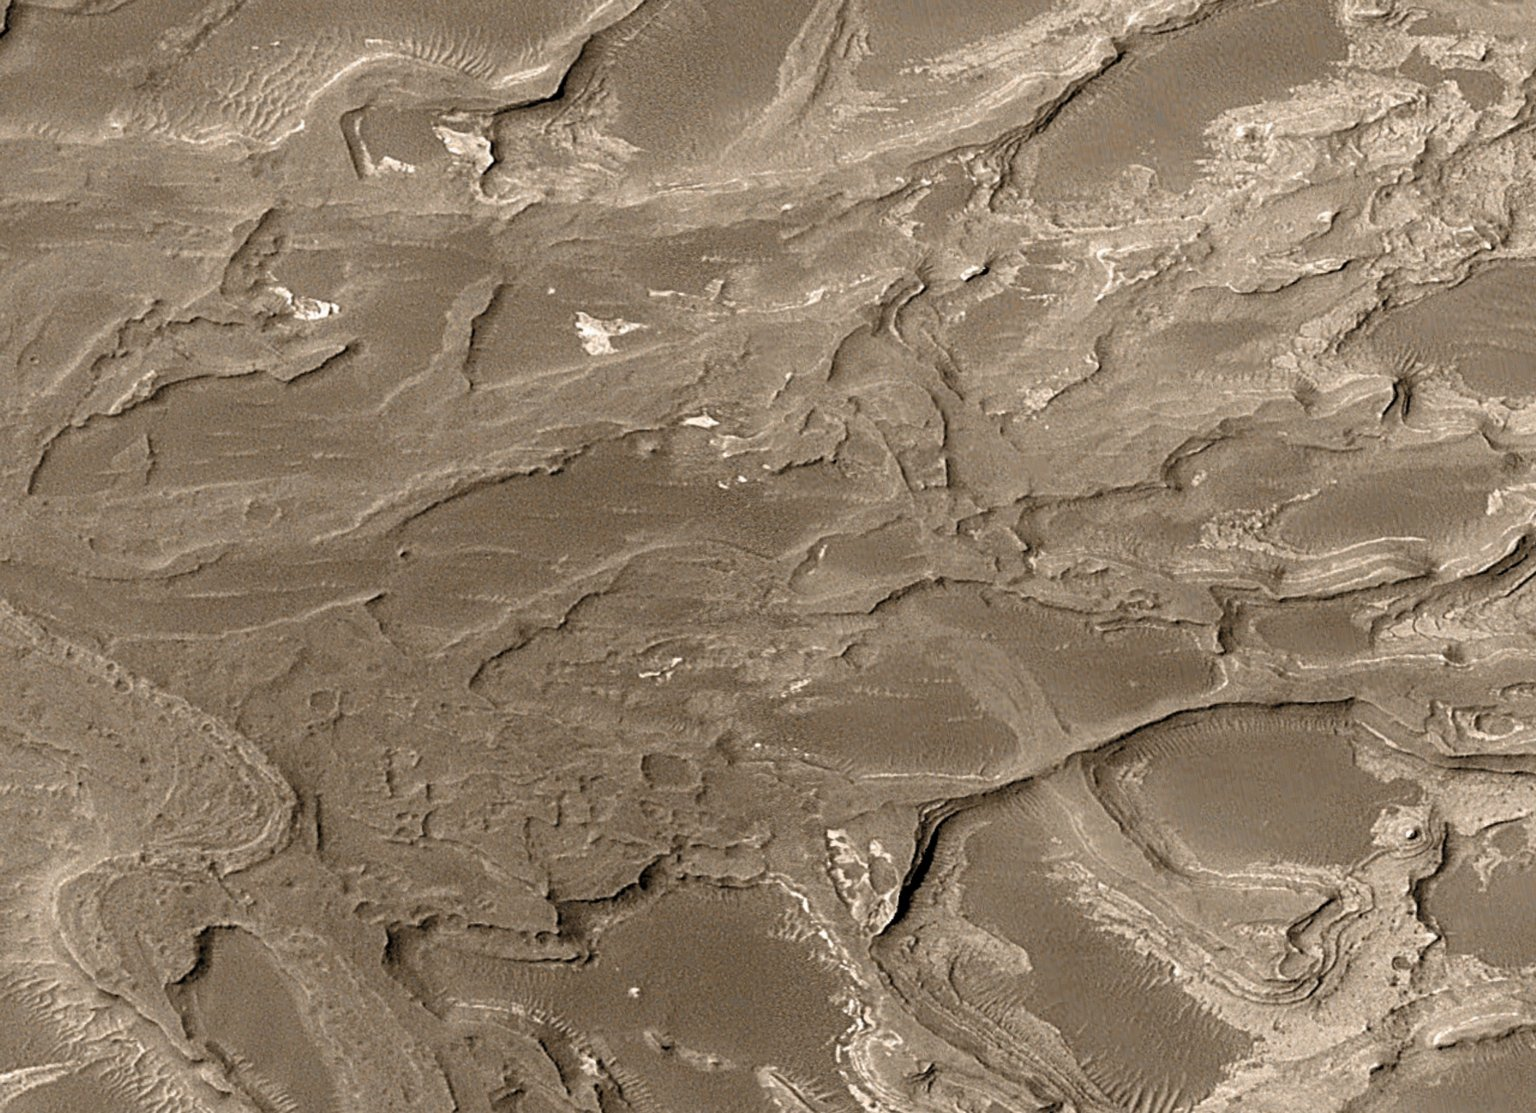 Great Zoom into Distributary Fan, Mars